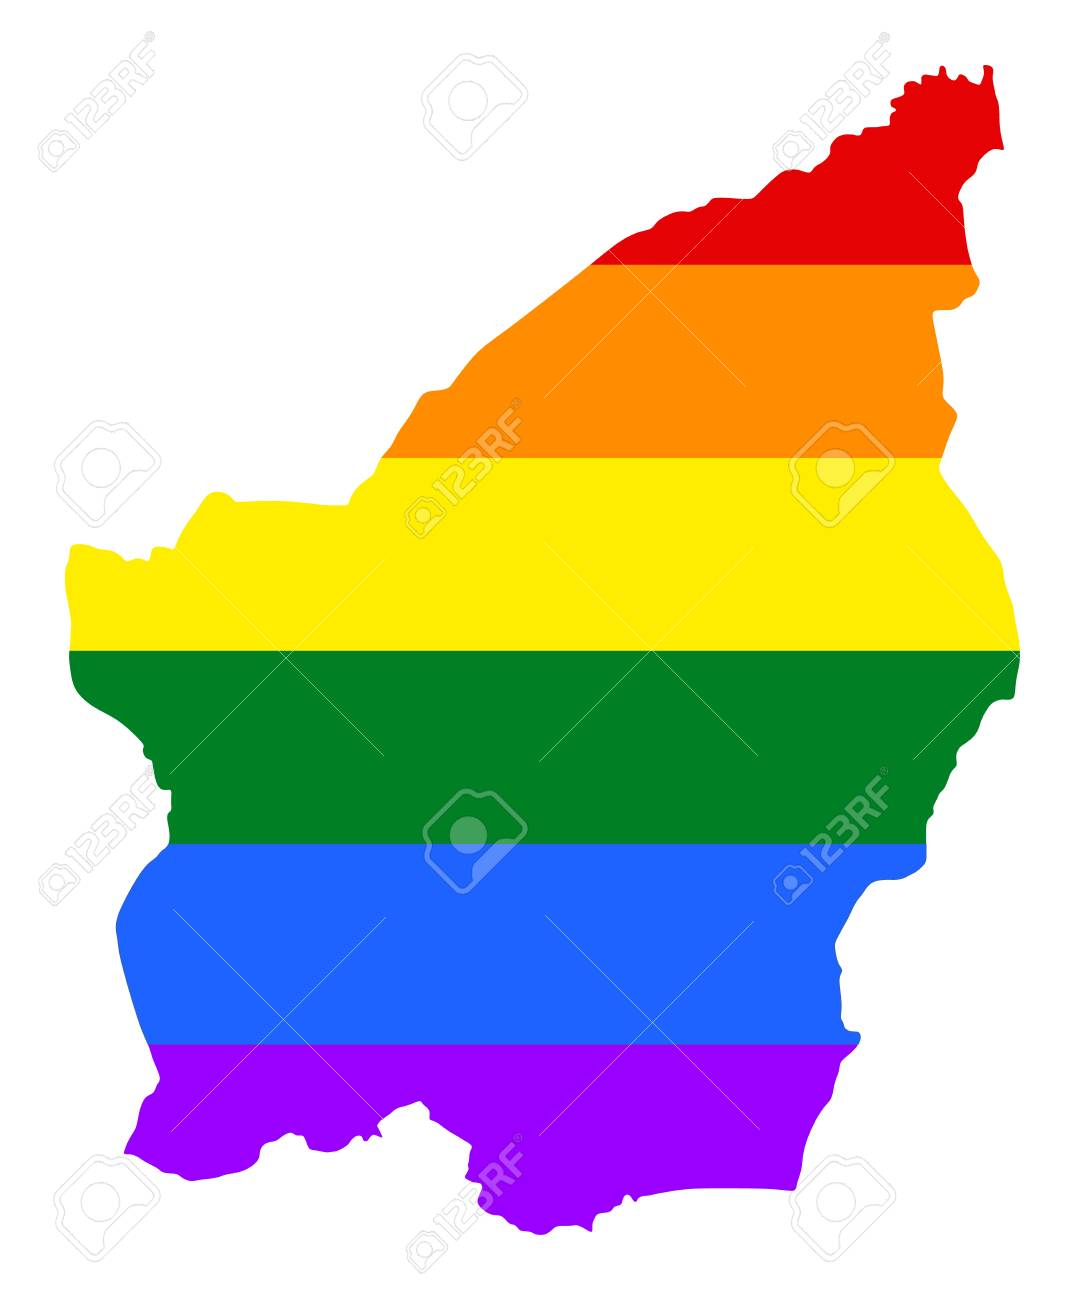 San Marino Pride Gay Map With Rainbow Flag Colors Europe Country